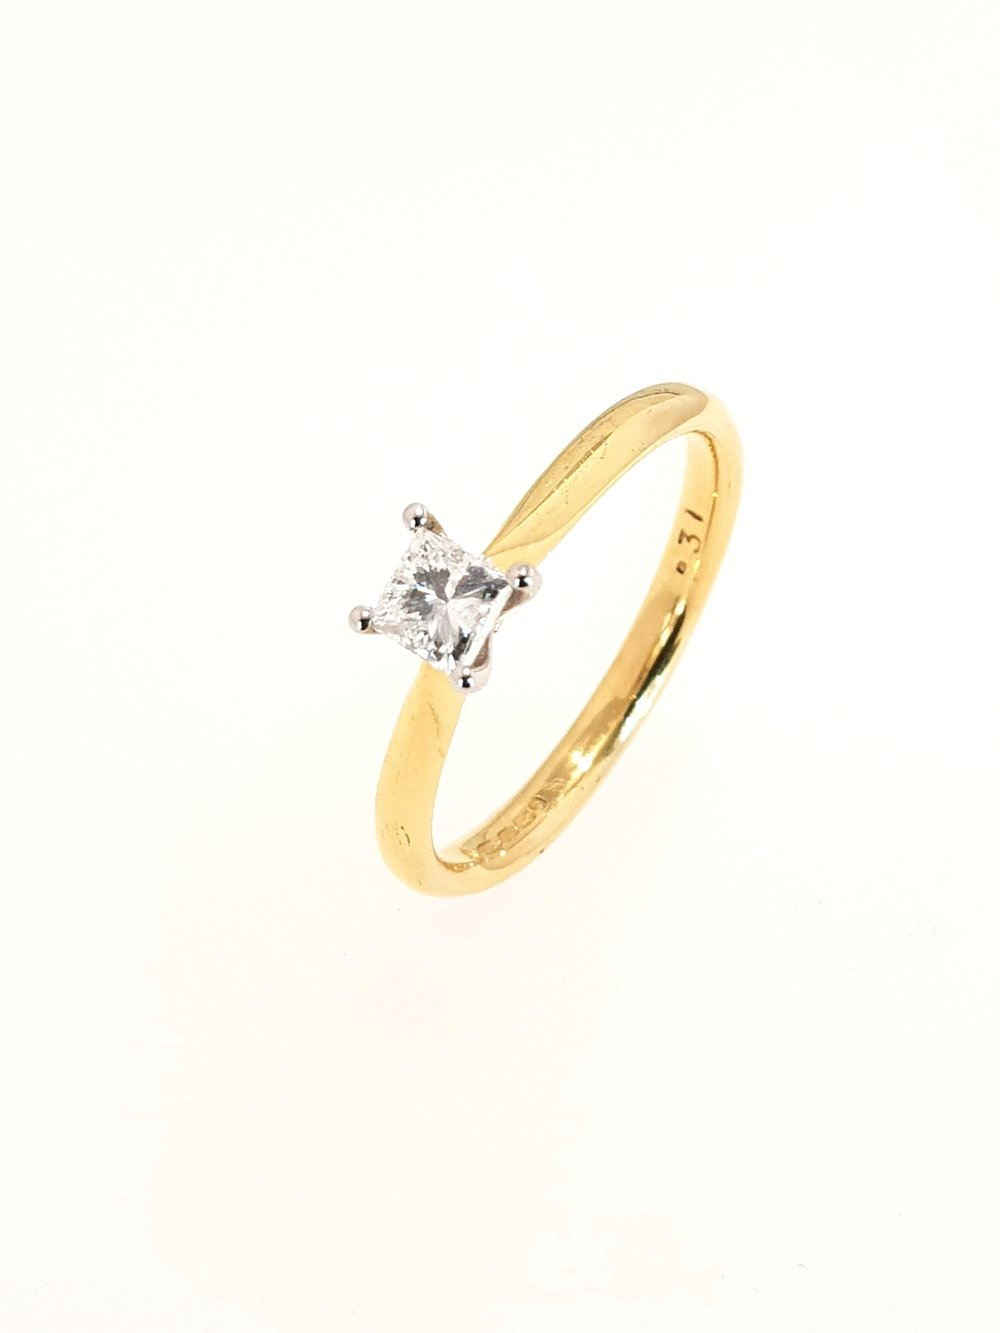 18ct Yellow Gold Diamond Ring, Princess Cut  .30ct, G, Si1  Stock Code: N8326  £1150